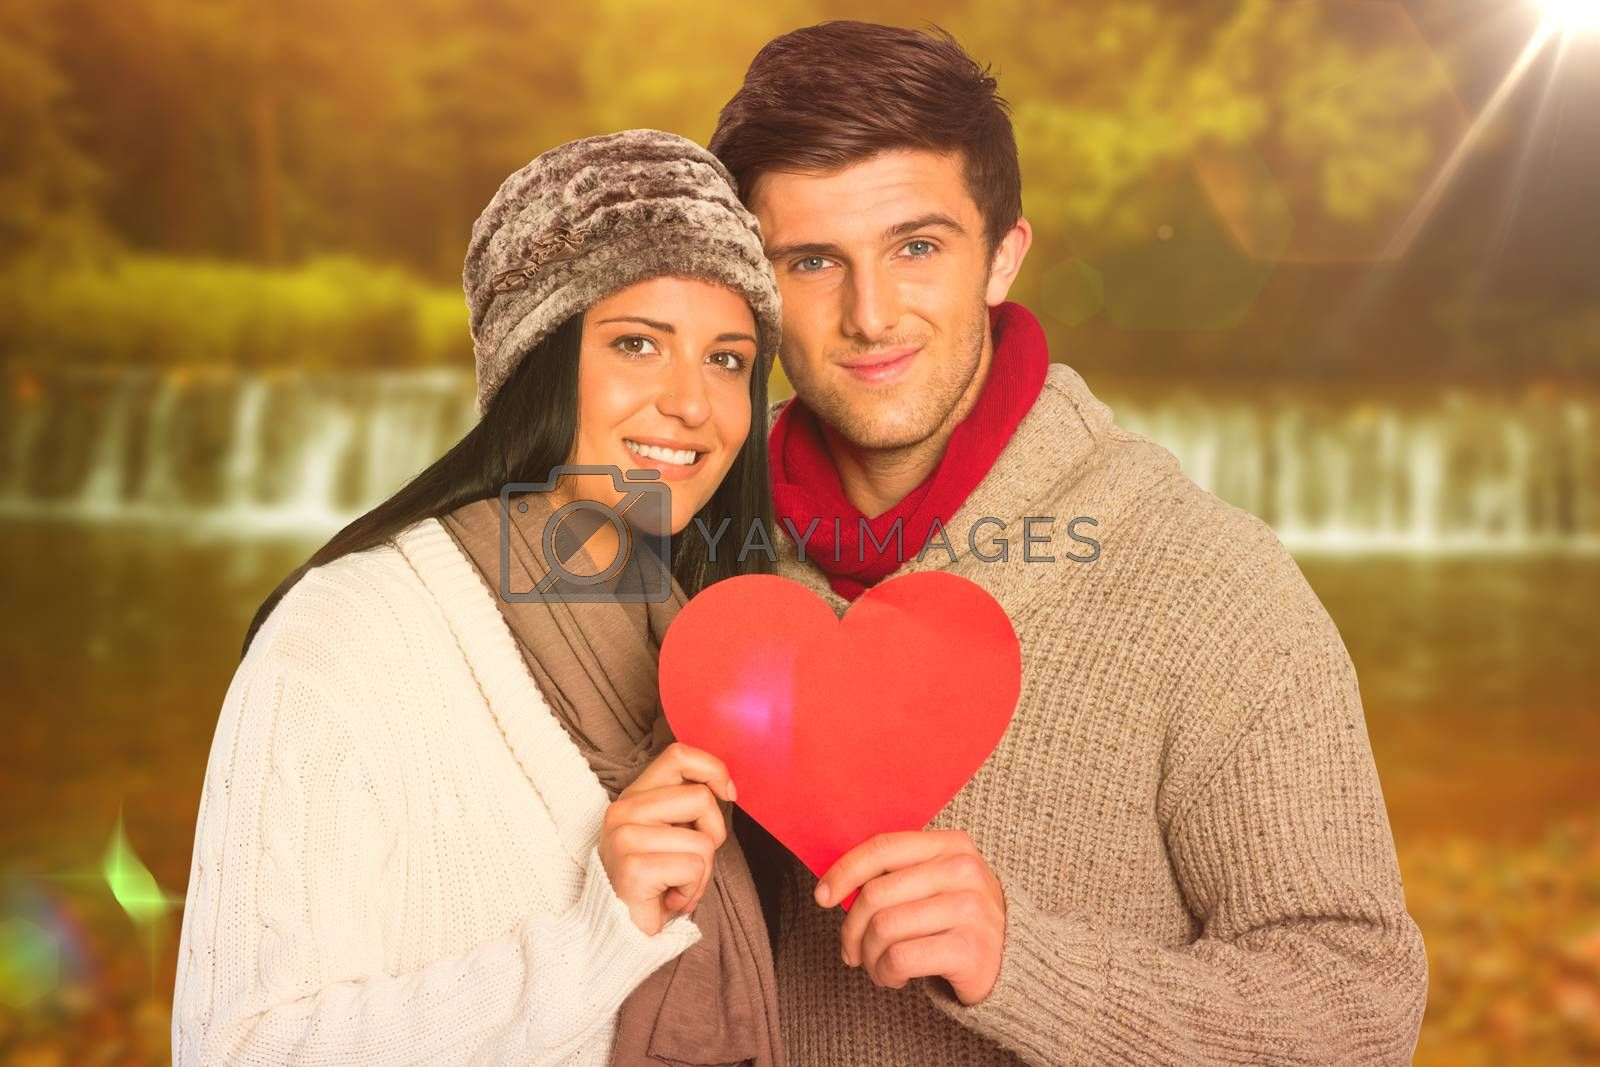 Composite image of young couple smiling holding red heart by Wavebreakmedia